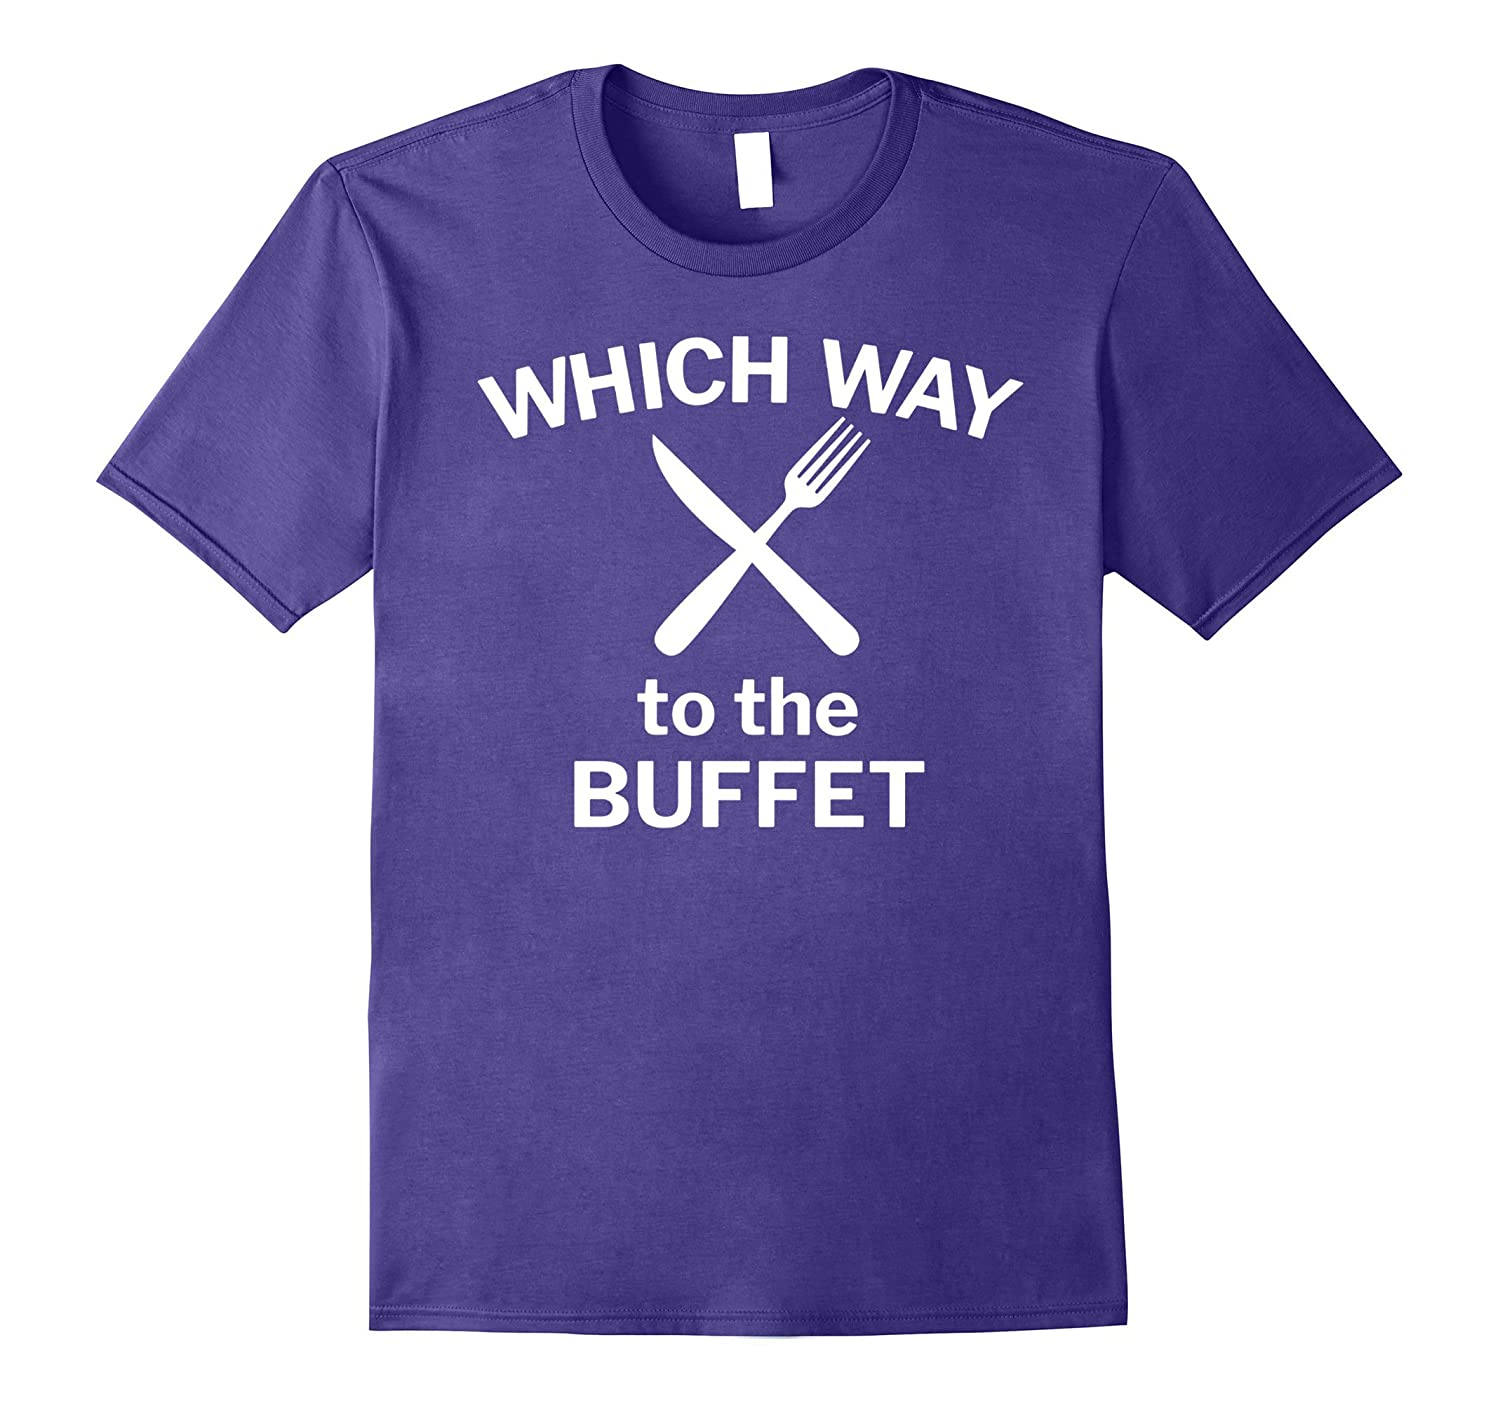 Which Way to the Buffet Funny Cruise T-Shirt for Food Lovers-FL